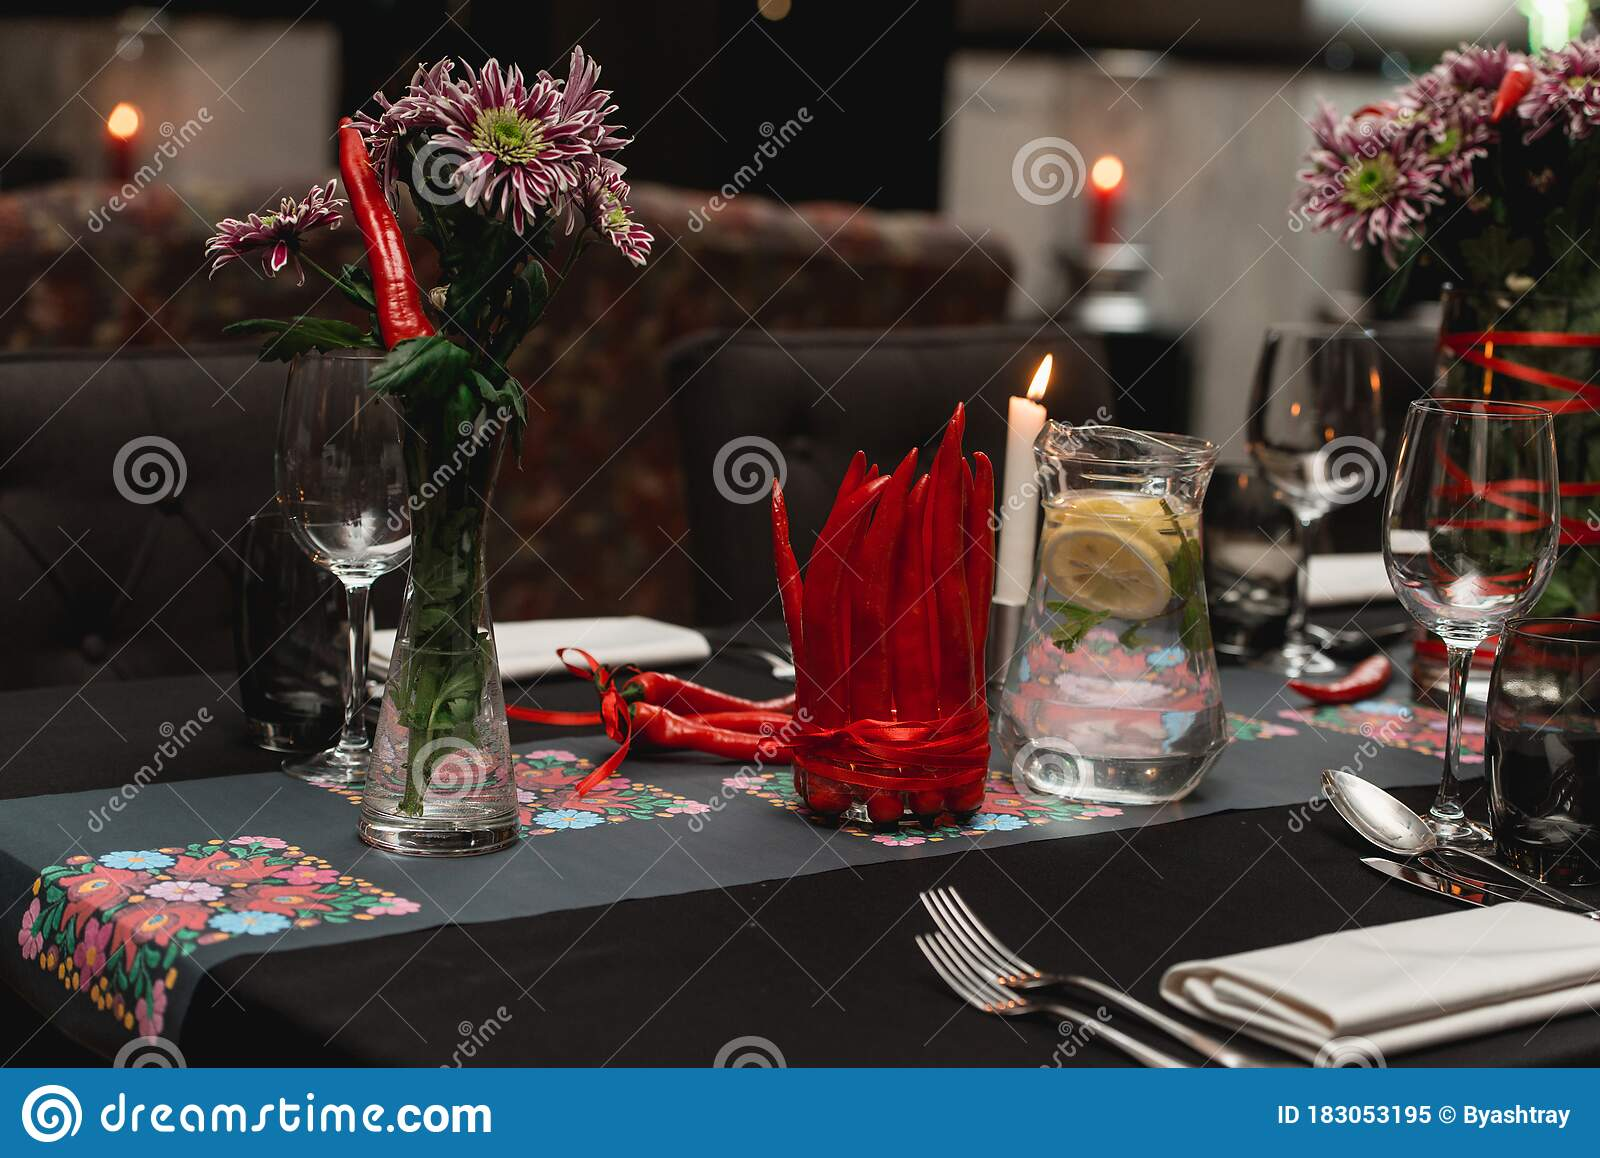 Served Restaurant Table Red Pepper Decoration On A Black Tablecloth Stock Image Image Of Fine Cutlery 183053195